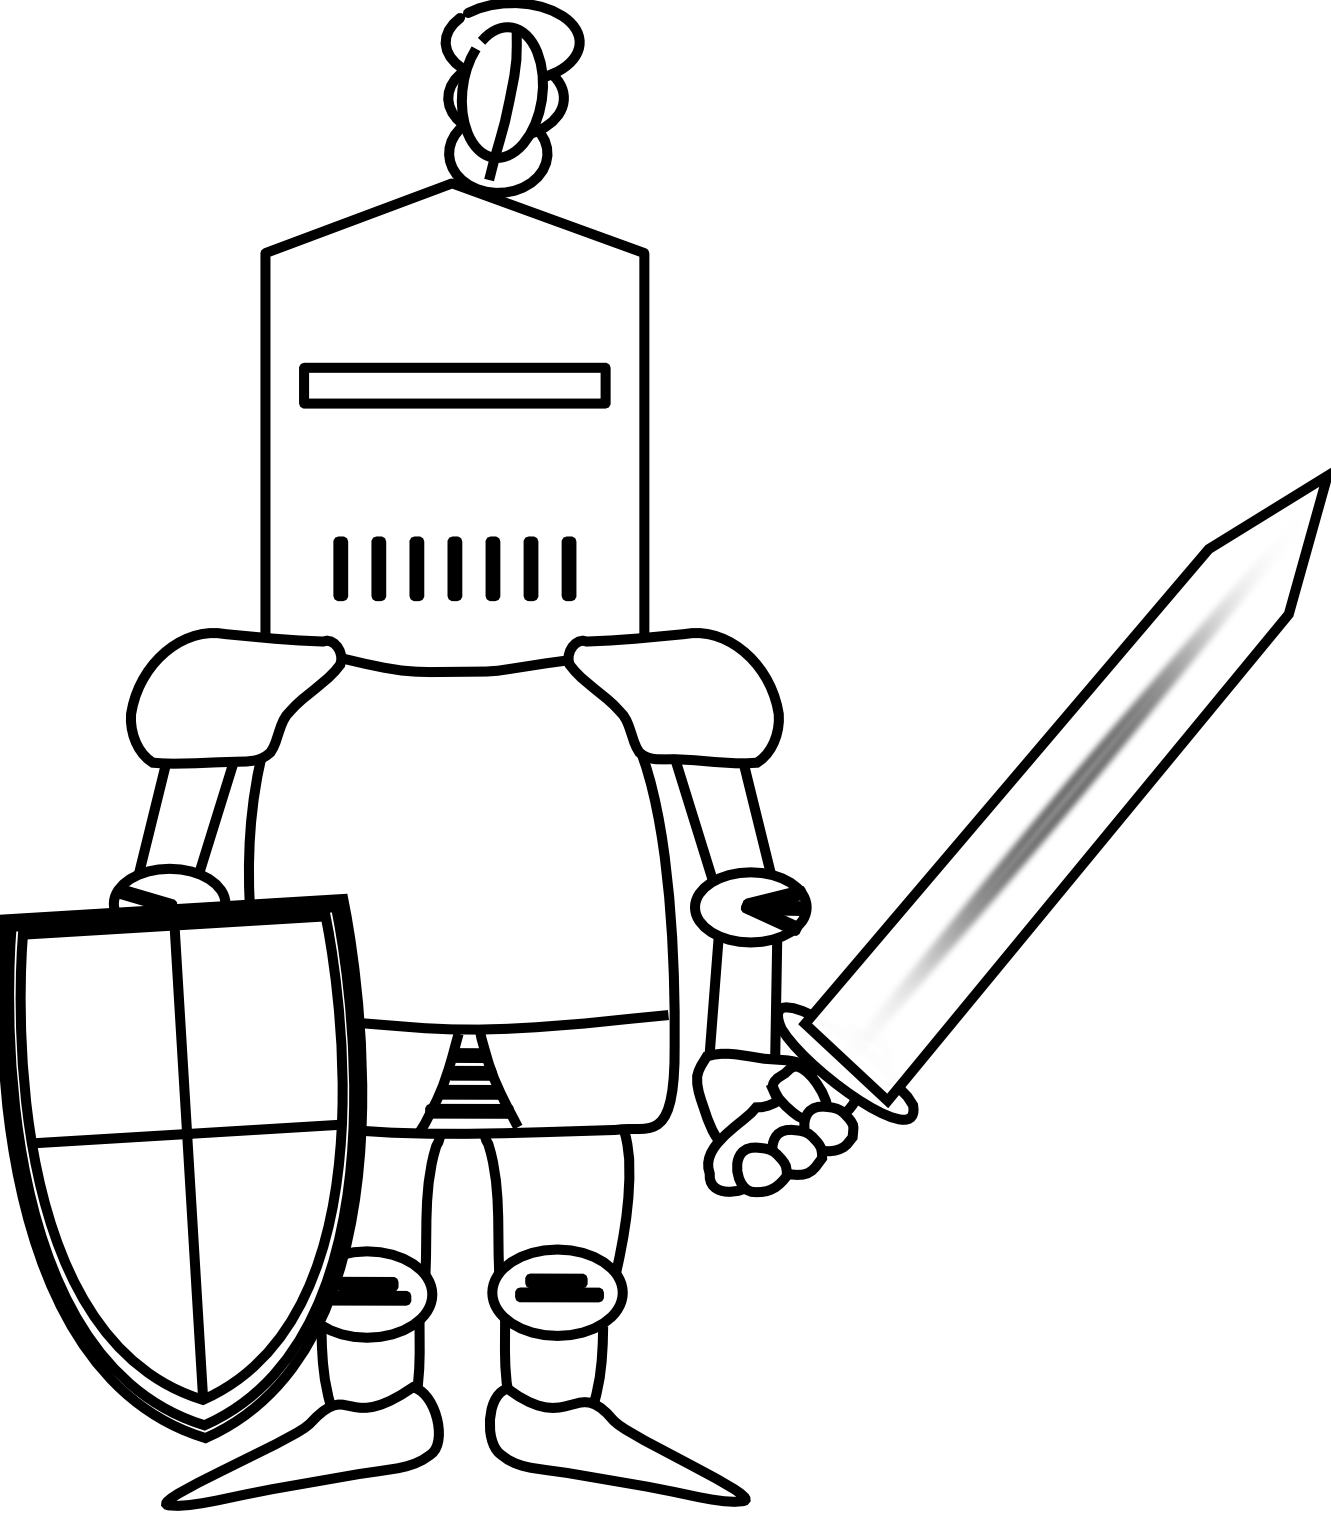 Knight panda free images. Grave clipart black and white